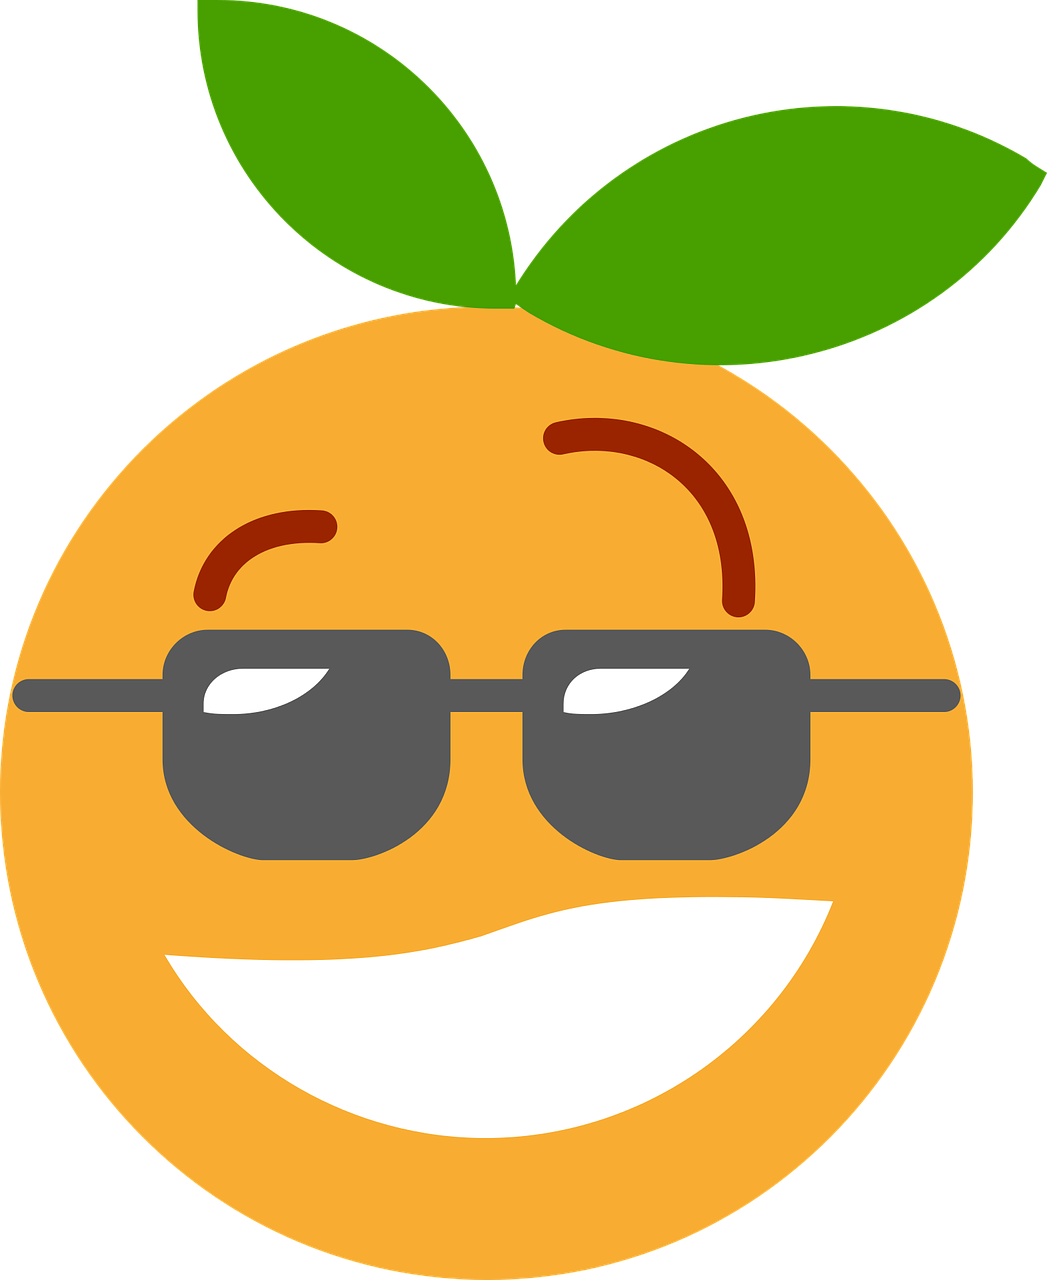 Cool Clementine Orange Cartoon